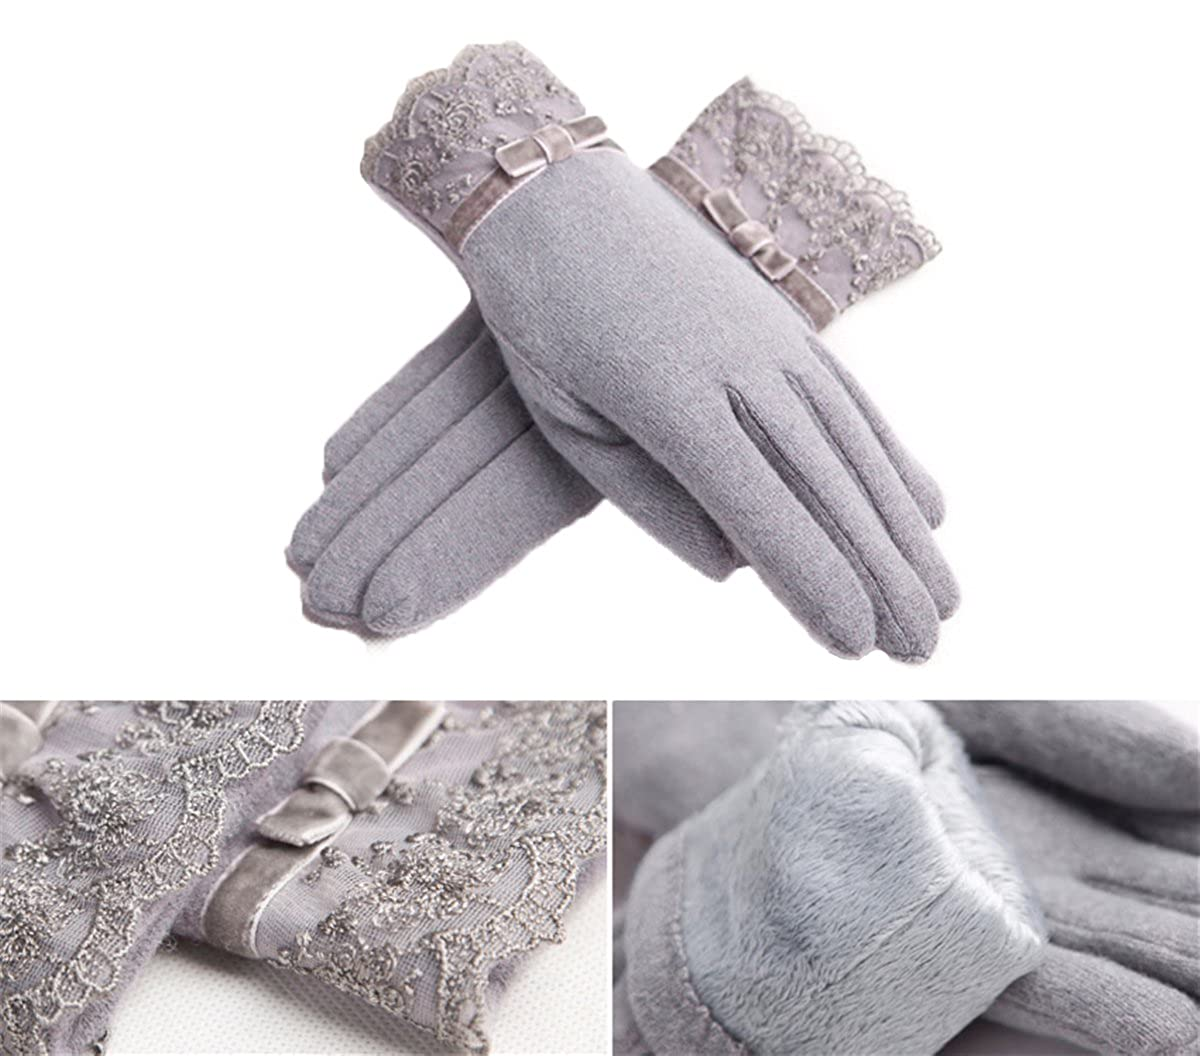 Apparelsales Womens Winter Double Layer Warm Fleece Gloves Mittens with Lace Smoke Grey Lindaeshop